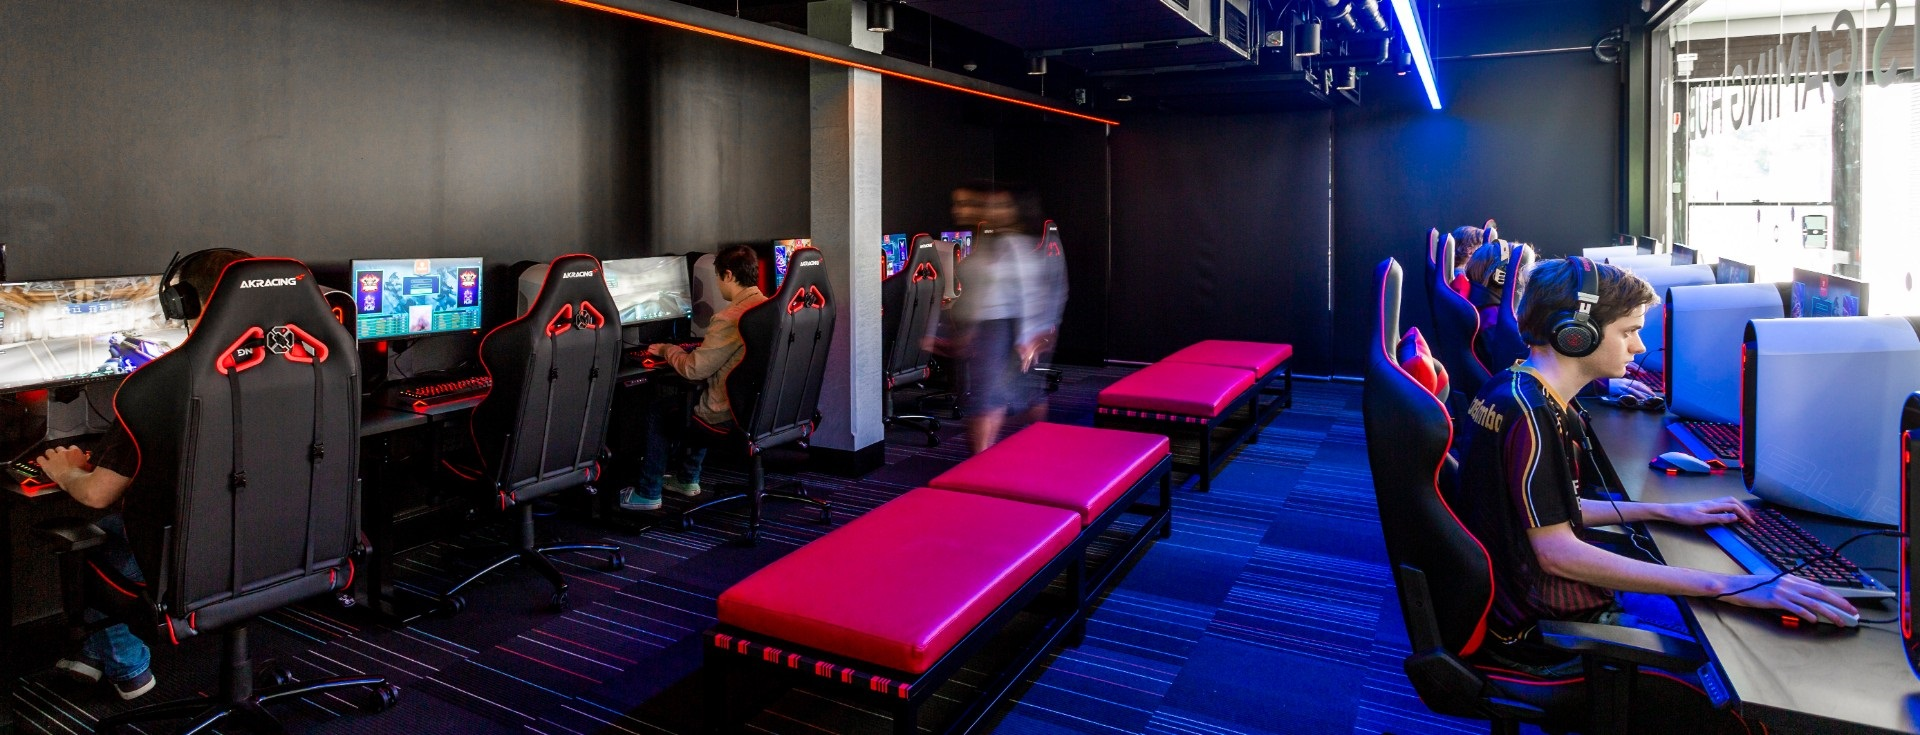 Students playing video games in esports hub